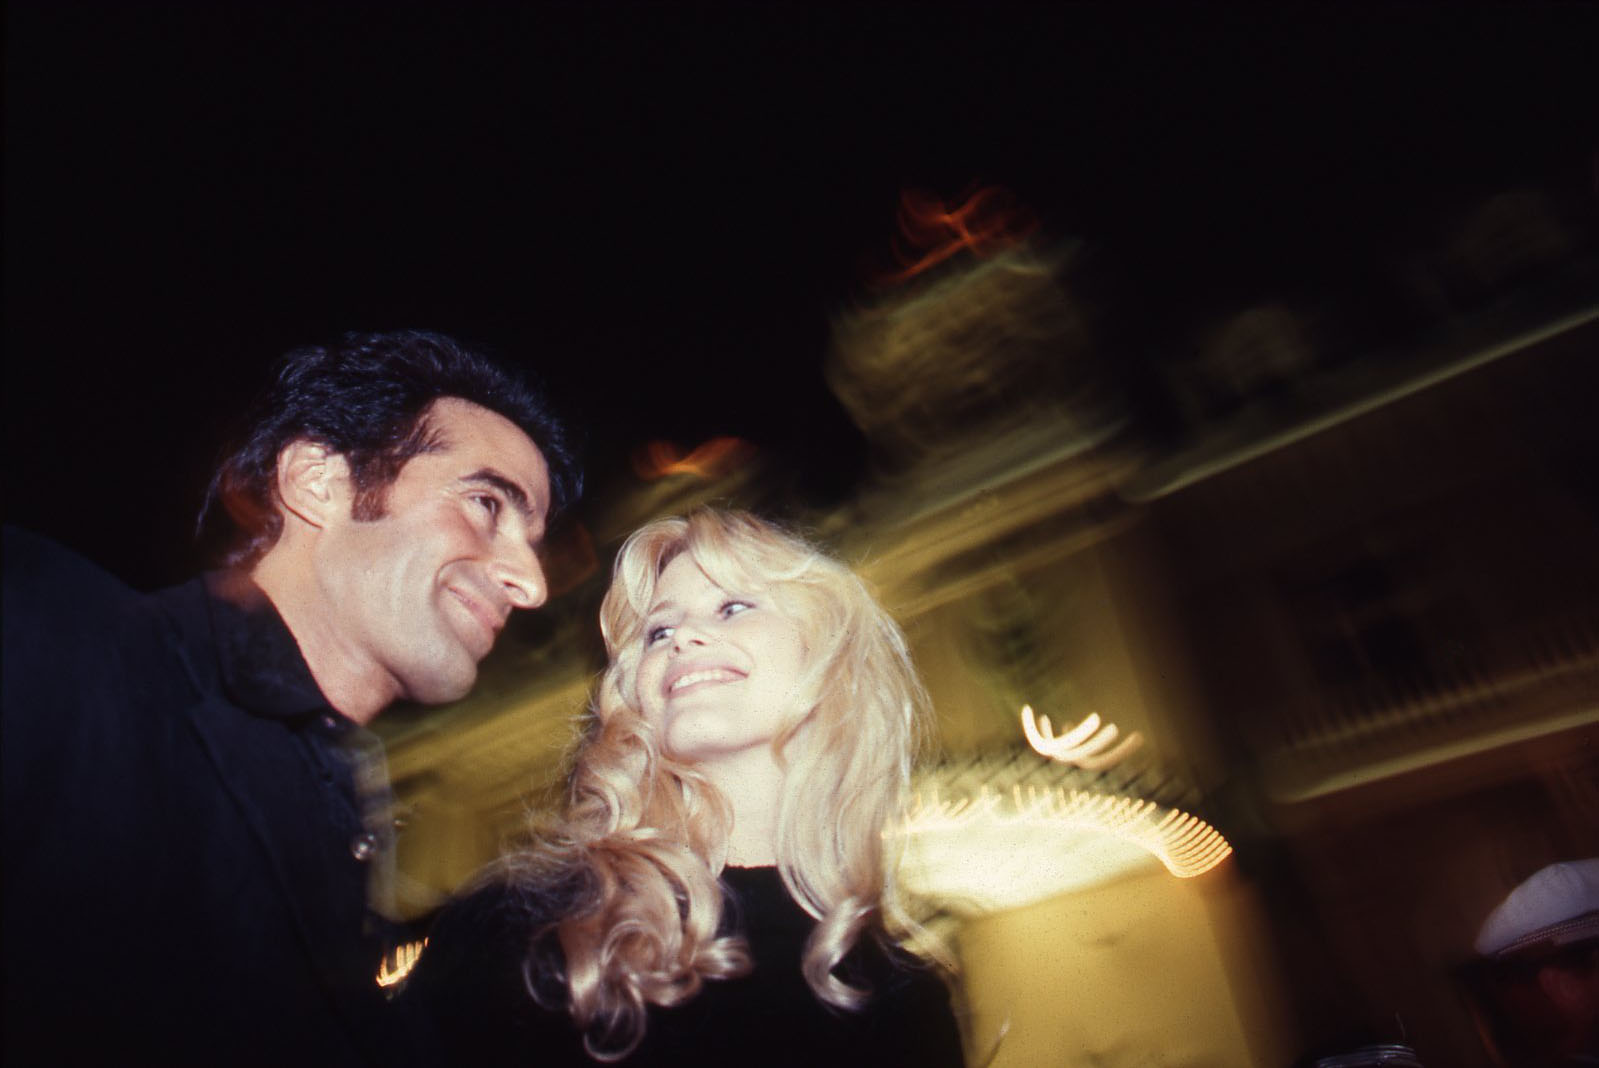 David Copperfield, Magician, and Claudia Schiffer, Model. Monte Carlo 1994